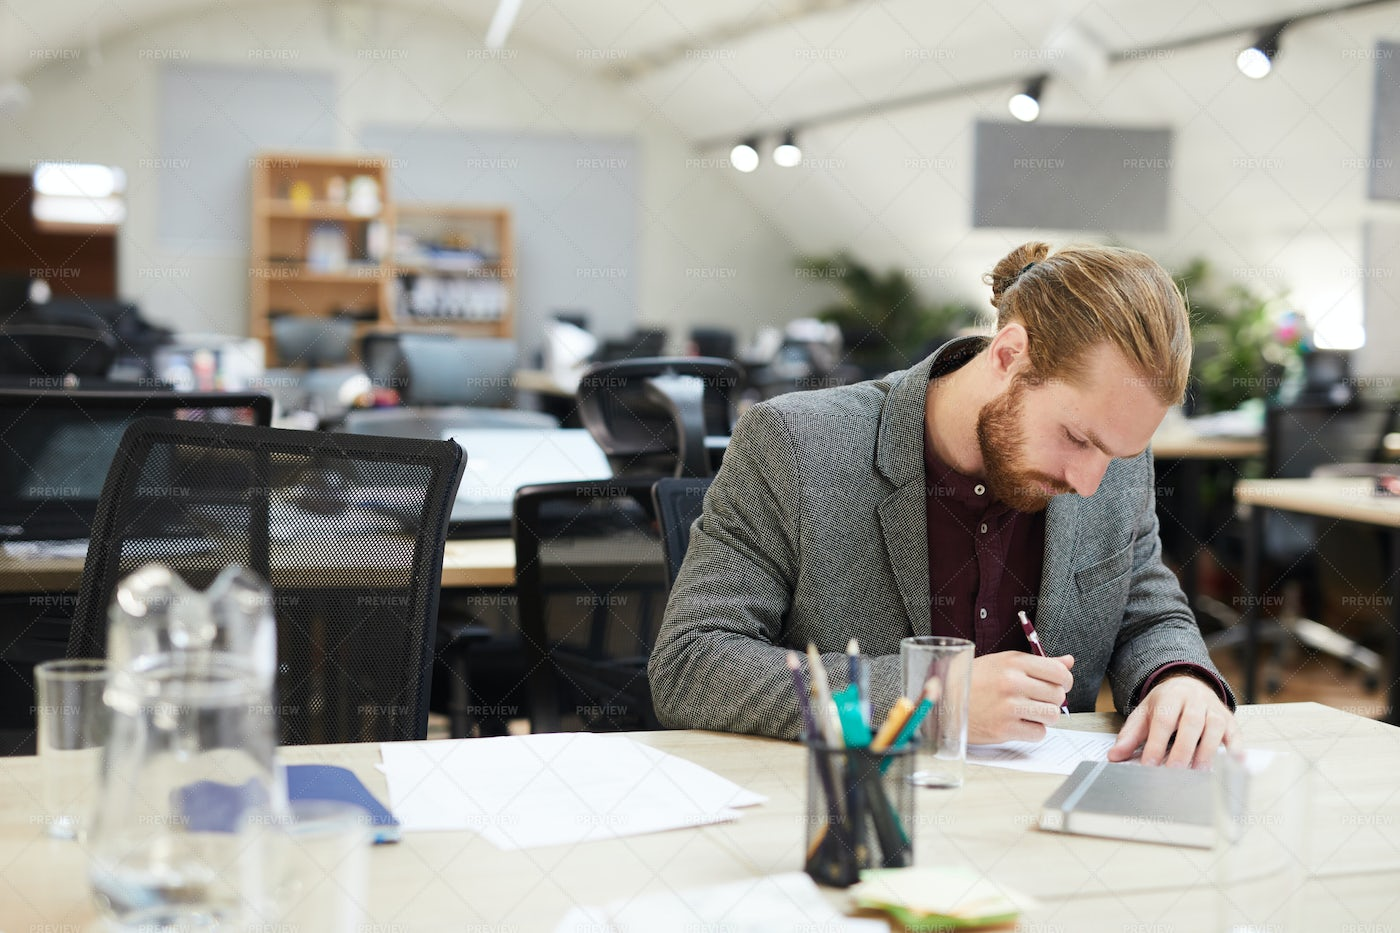 Businessman Working In Open Space...: Stock Photos